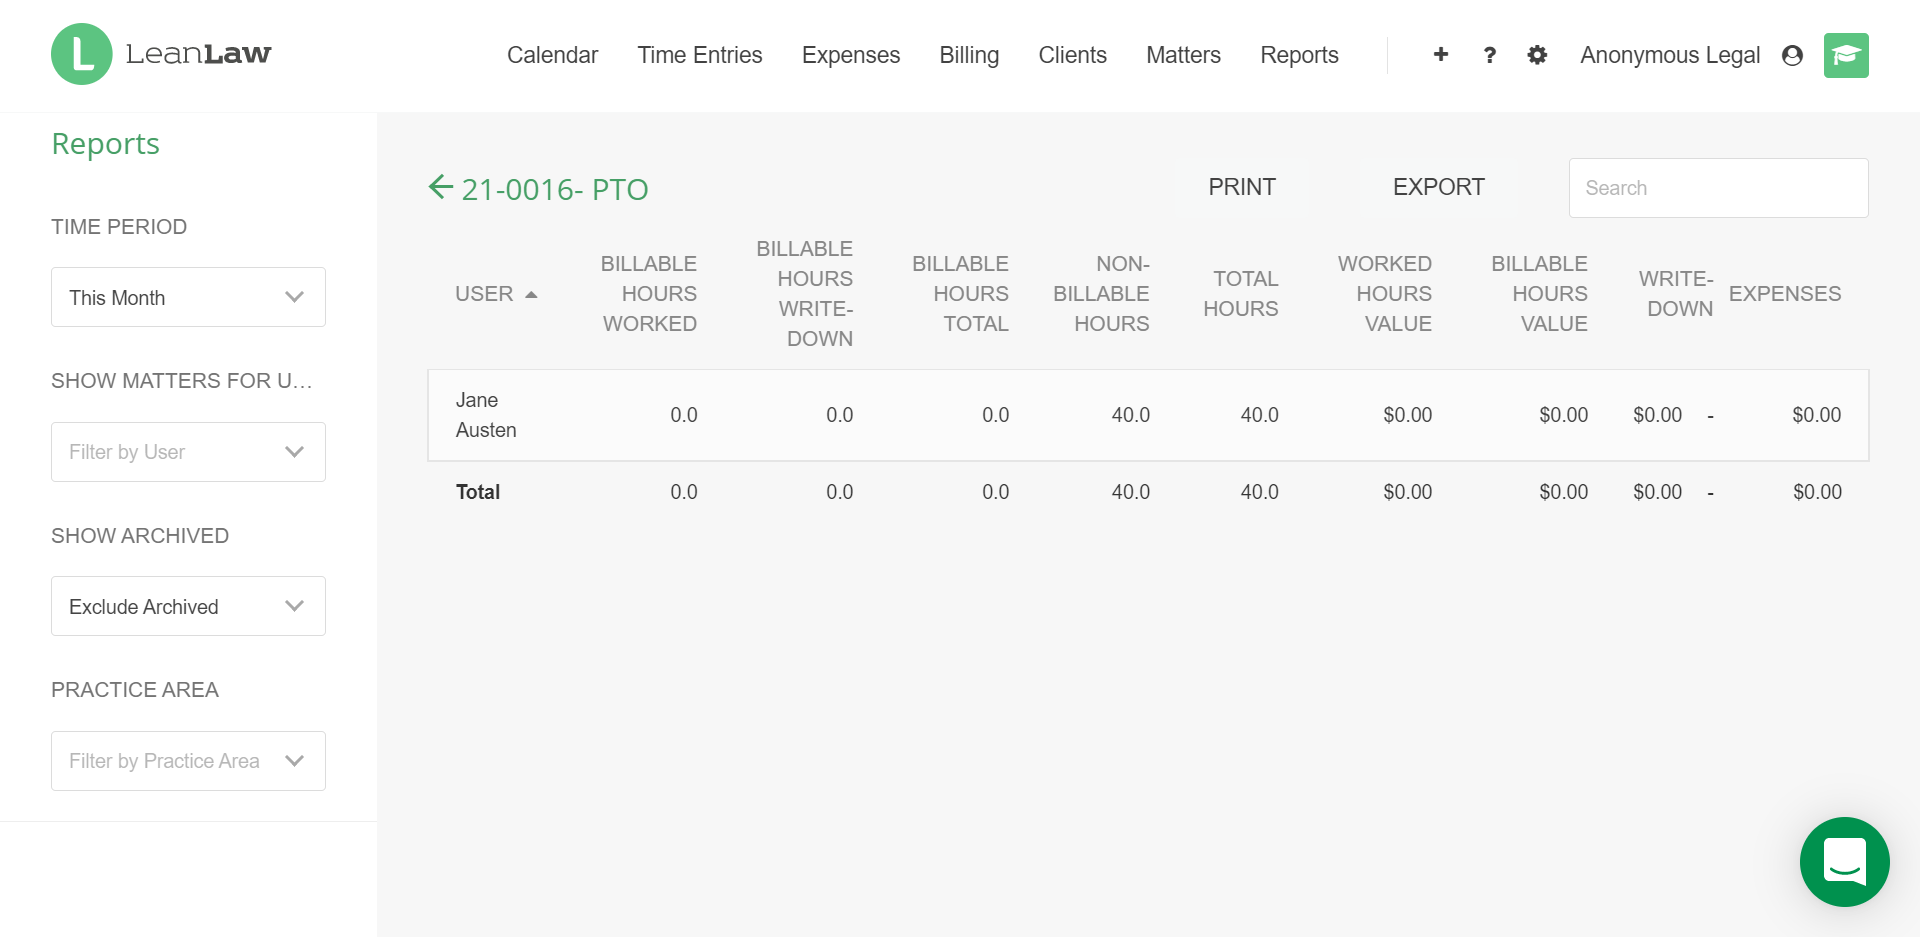 A screenshot of the Productivity by client and matter report, viewing a PTO matter